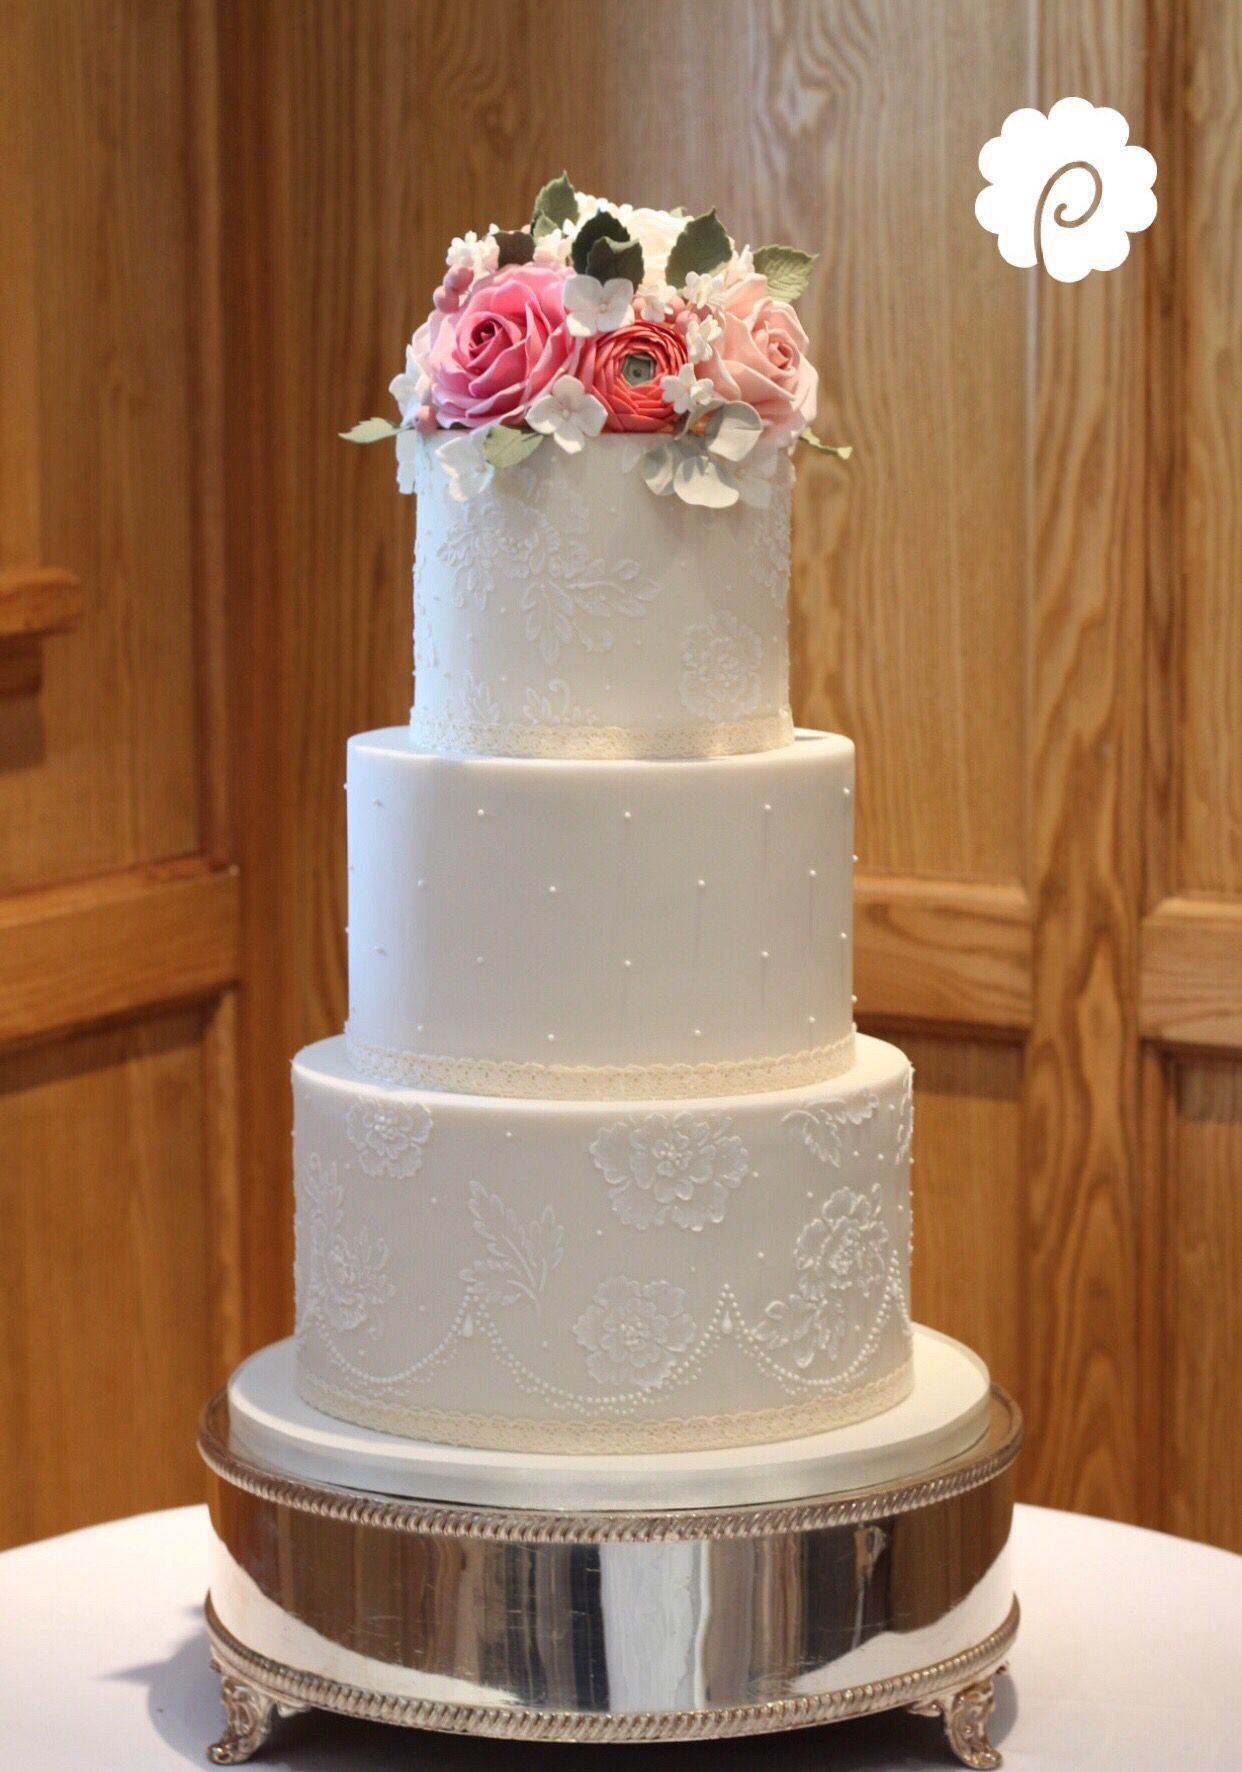 Vintage rose wedding cake with delicate iced brushwork effect